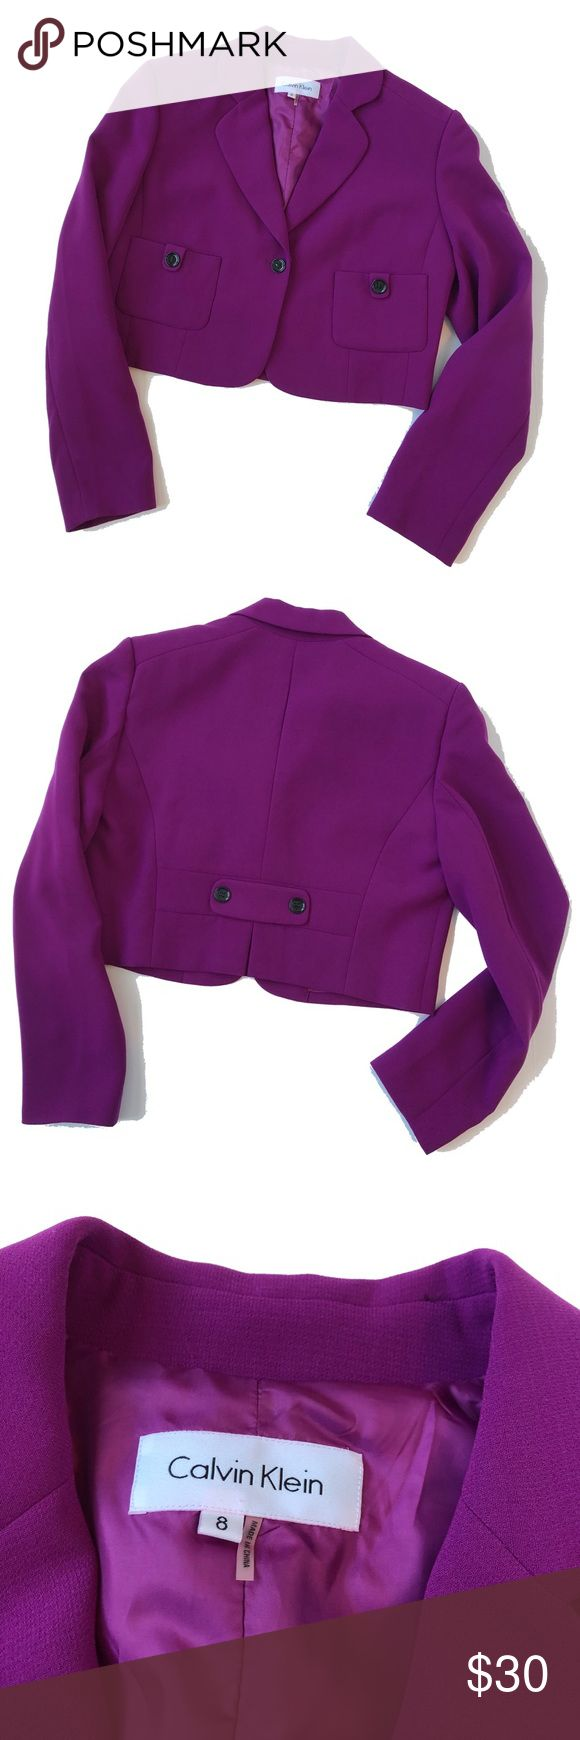 🆕Listing! Calvin Klein Cropped Blazer Size 8 This Blazer would look great with a high waisted black maxi skirt! (Check my other listings!🙂) The bright purple is a great pop of color with black buttons on the pockets. Feel free to make an offer! Calvin Klein Jackets & Coats Blazers